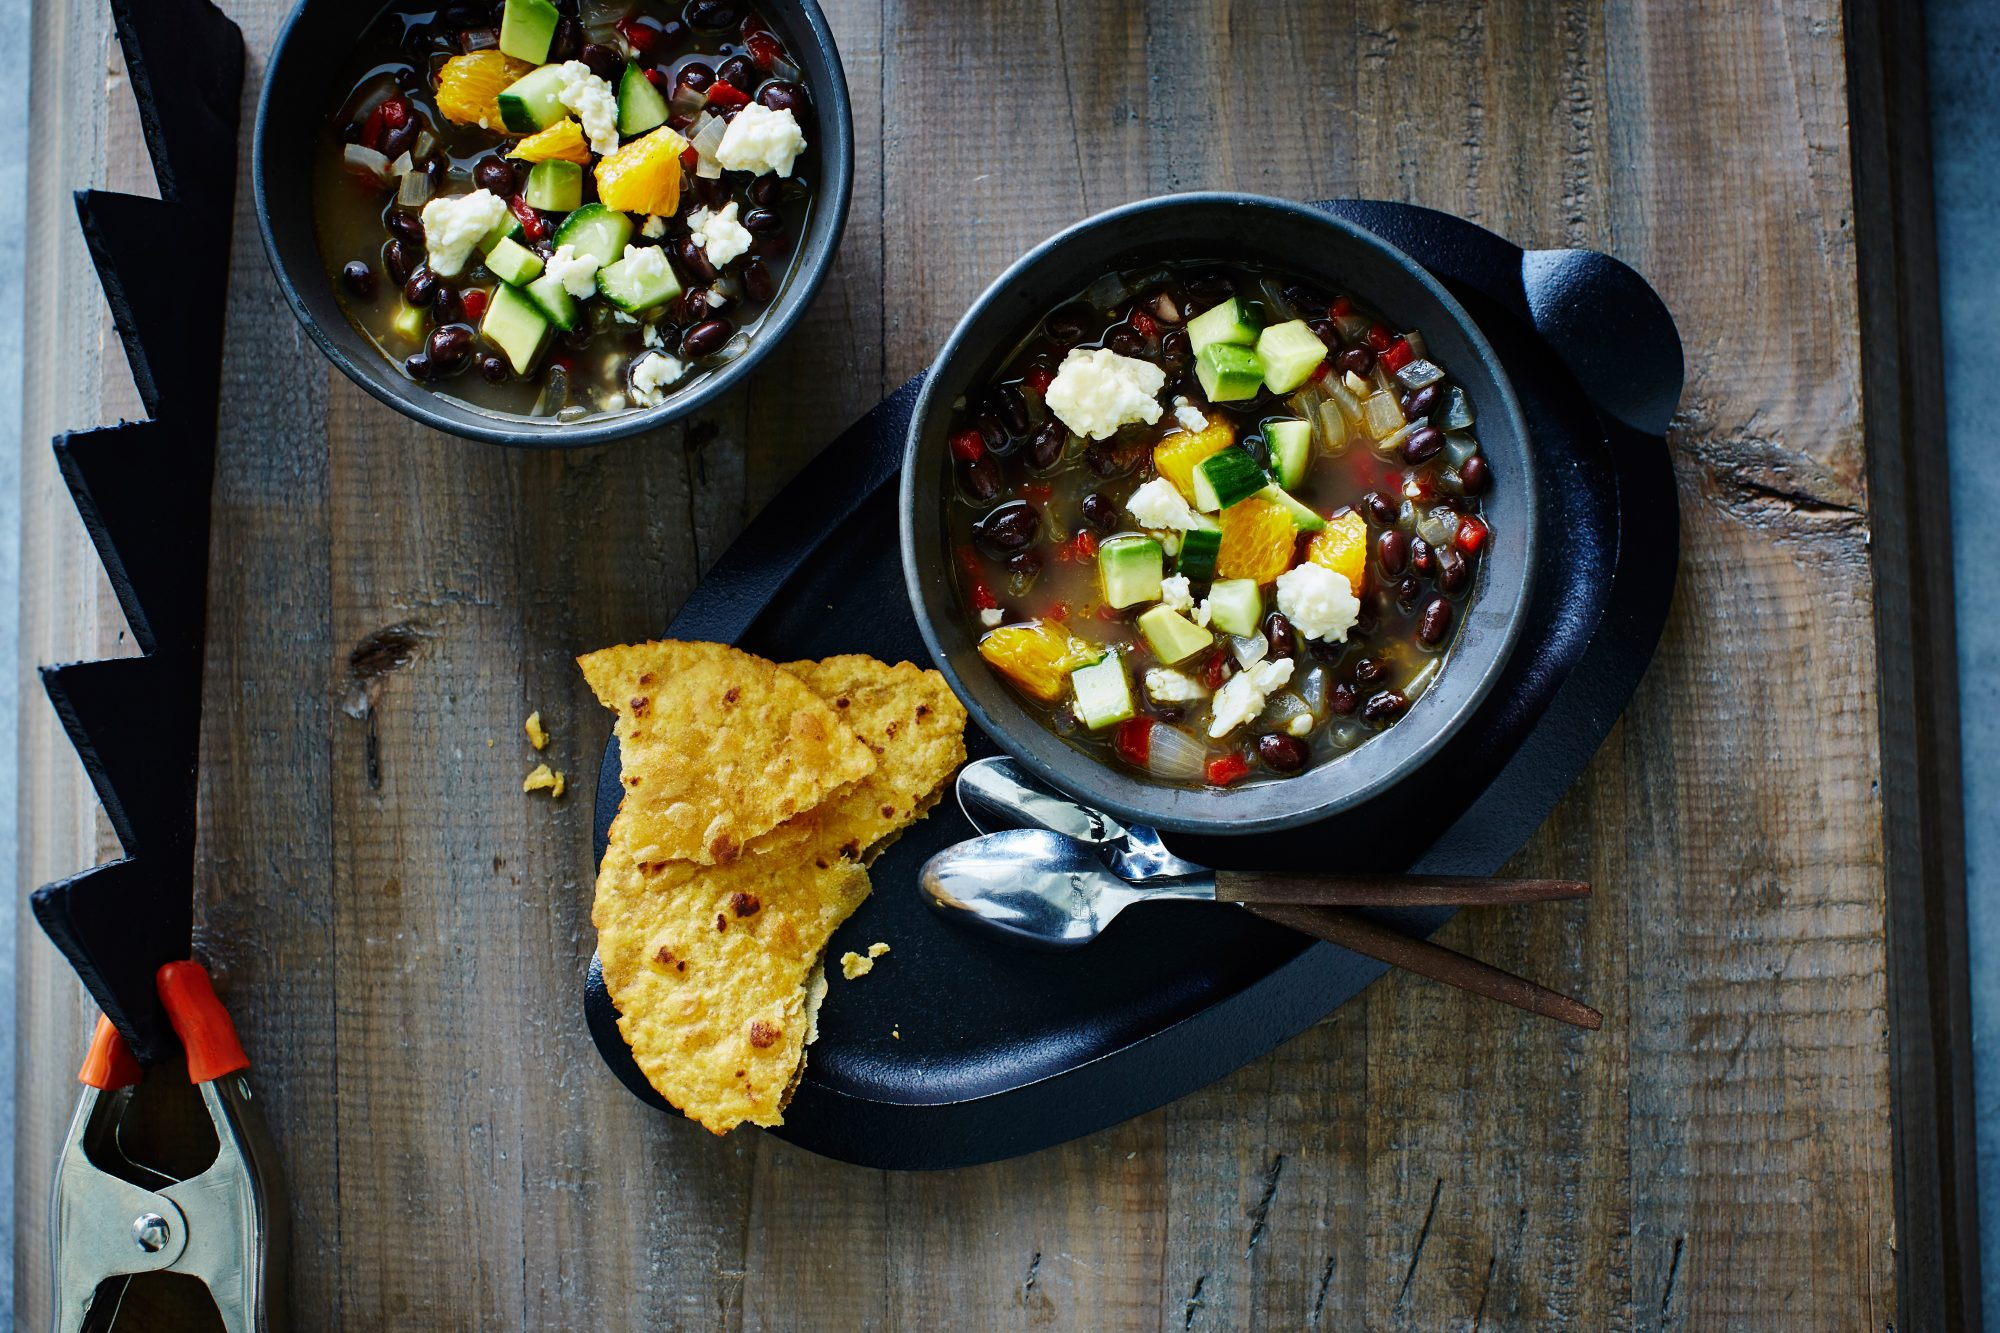 Black Bean Soup with Avocado, Orange, and Cucumber